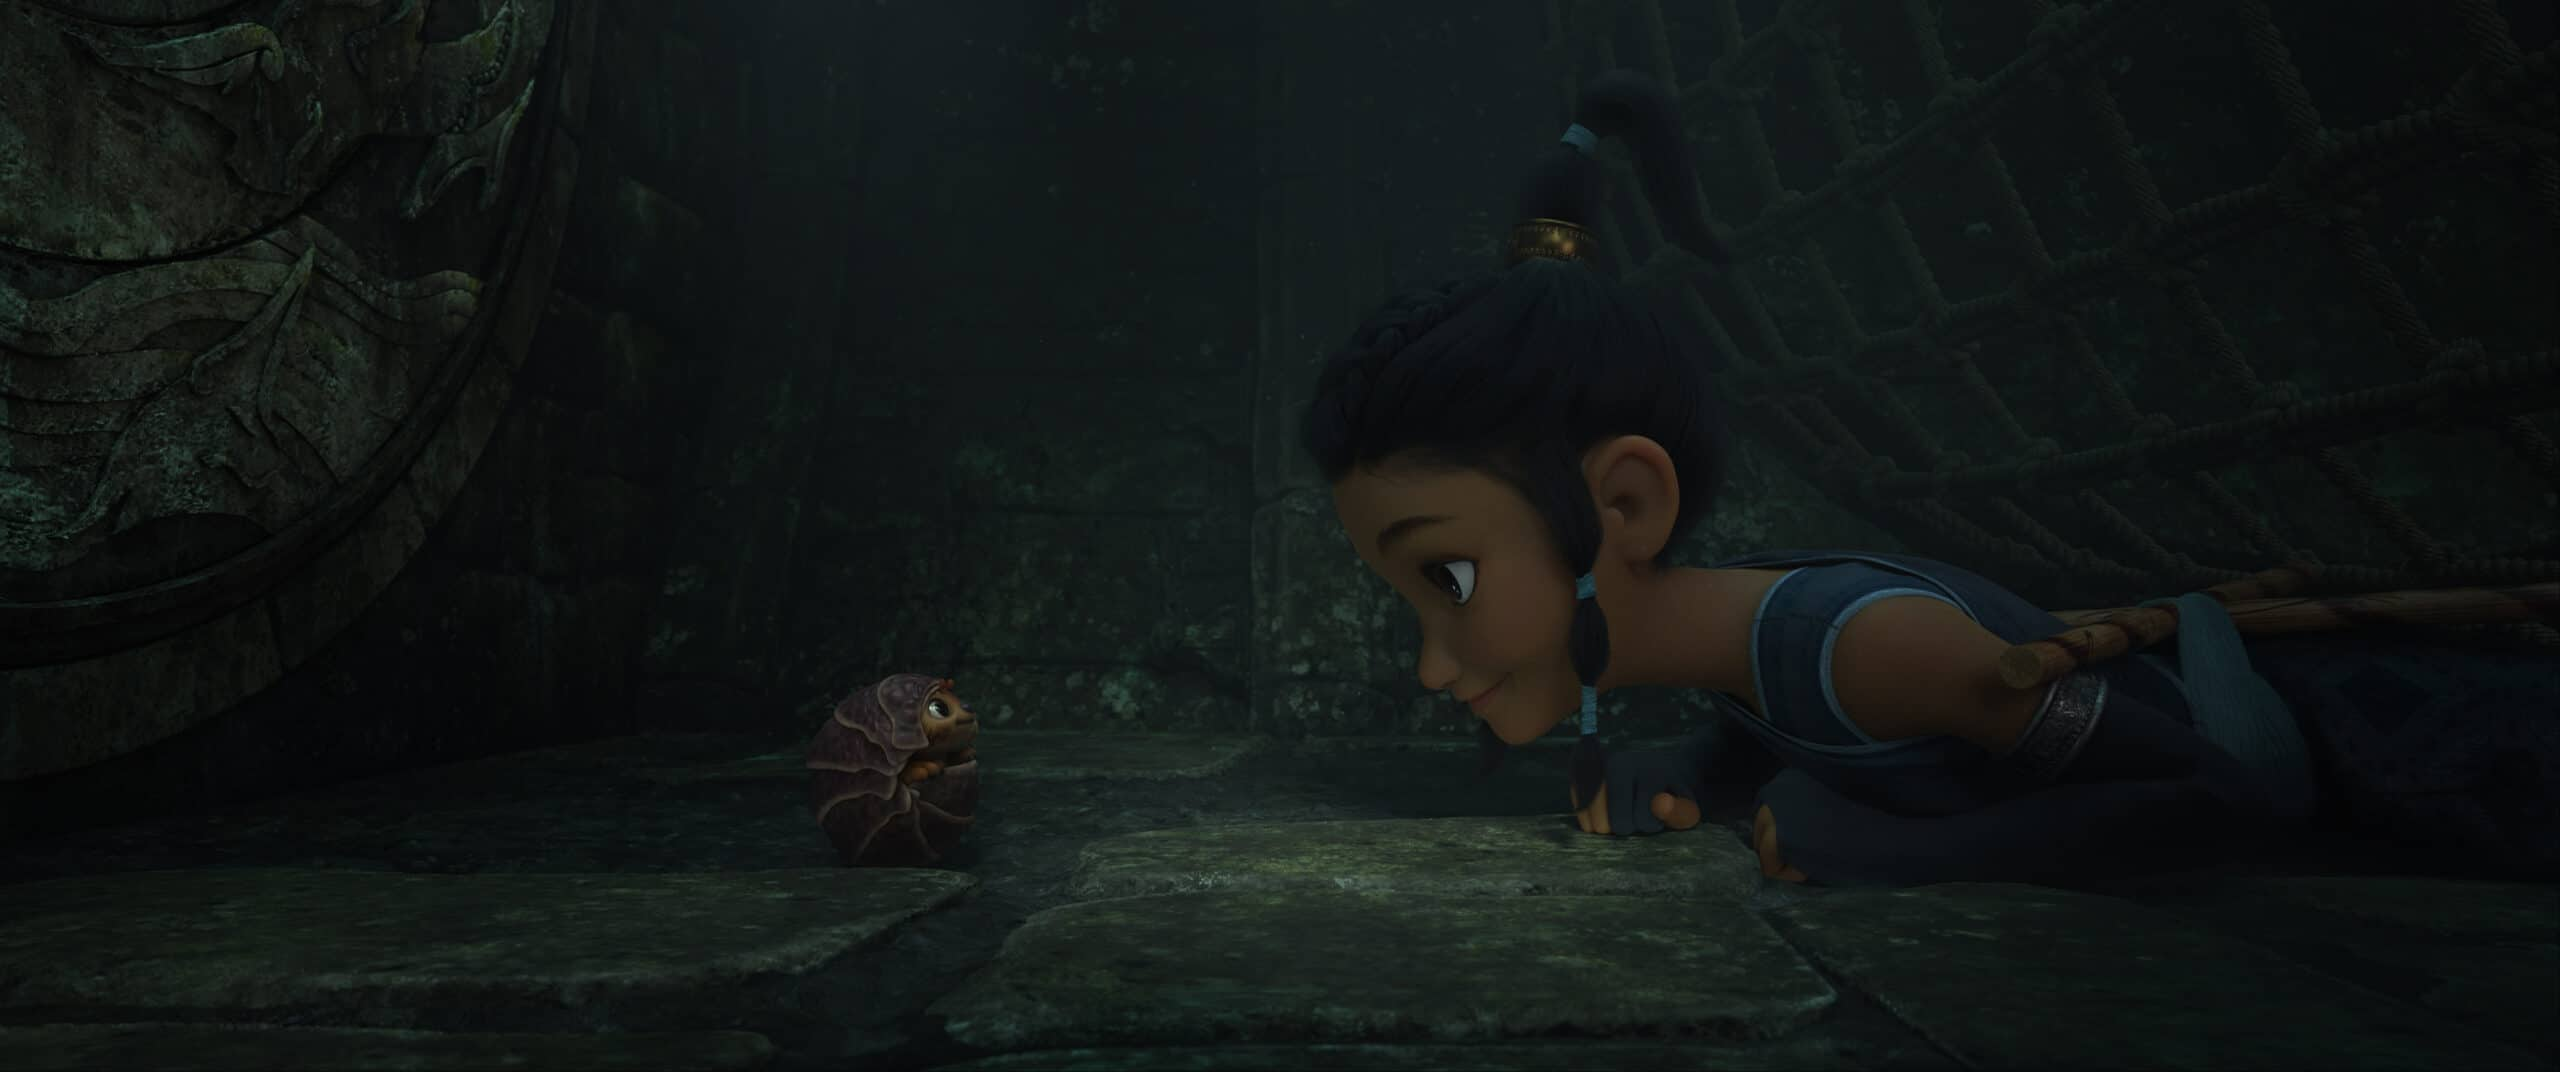 """Raya and The Last Dragon Best Friend. Grab a first look at the new trailer for Walt Disney Animation Studios Raya and the Last Dragon featuring Kelly Marie Tran as the voice of Raya. A lone warrior whose mission is to track down the legendary last dragon in a bid to save Kumandra and unite its lands. Walt Disney Animation Studios' """"Raya and the Last Dragon"""" opens in U.S. theaters on March 12, 2021."""